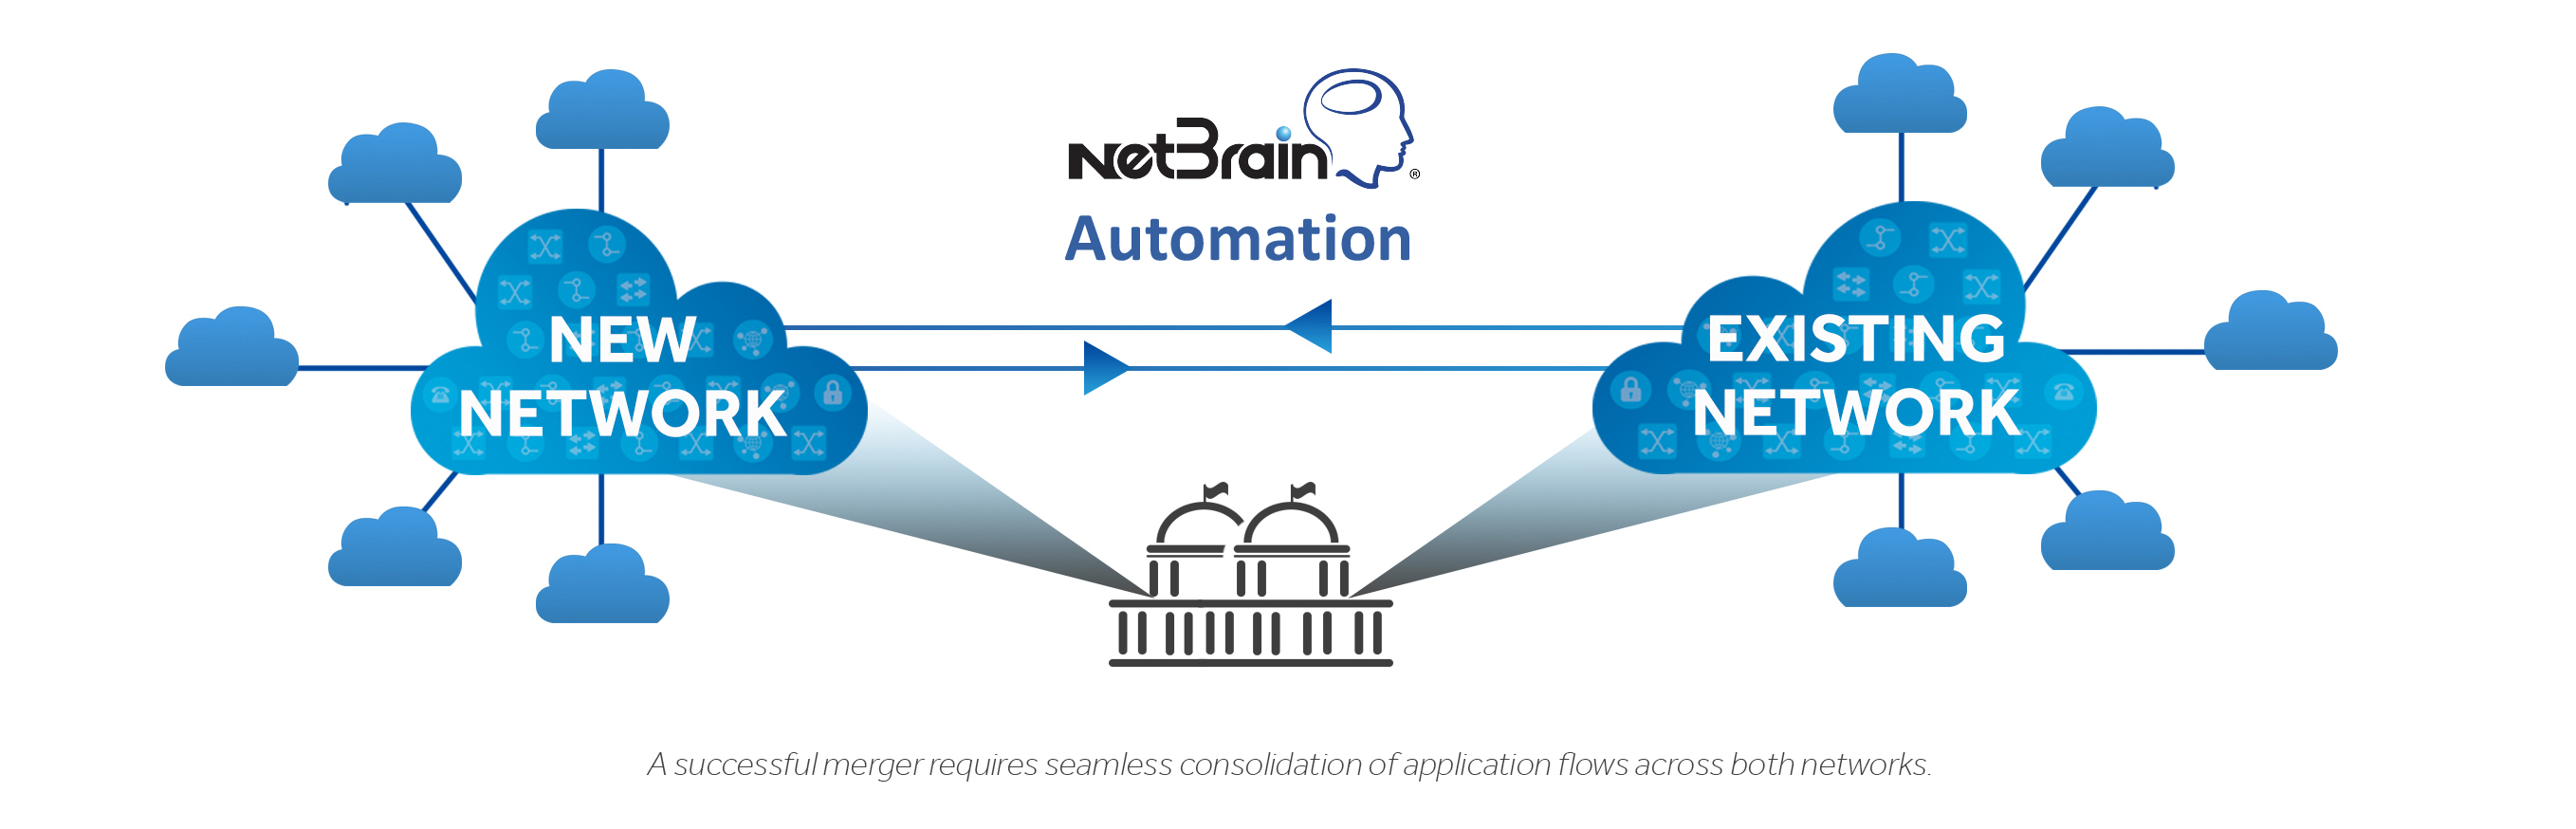 NetBrain better equips enterprises to integrate acquired networks.